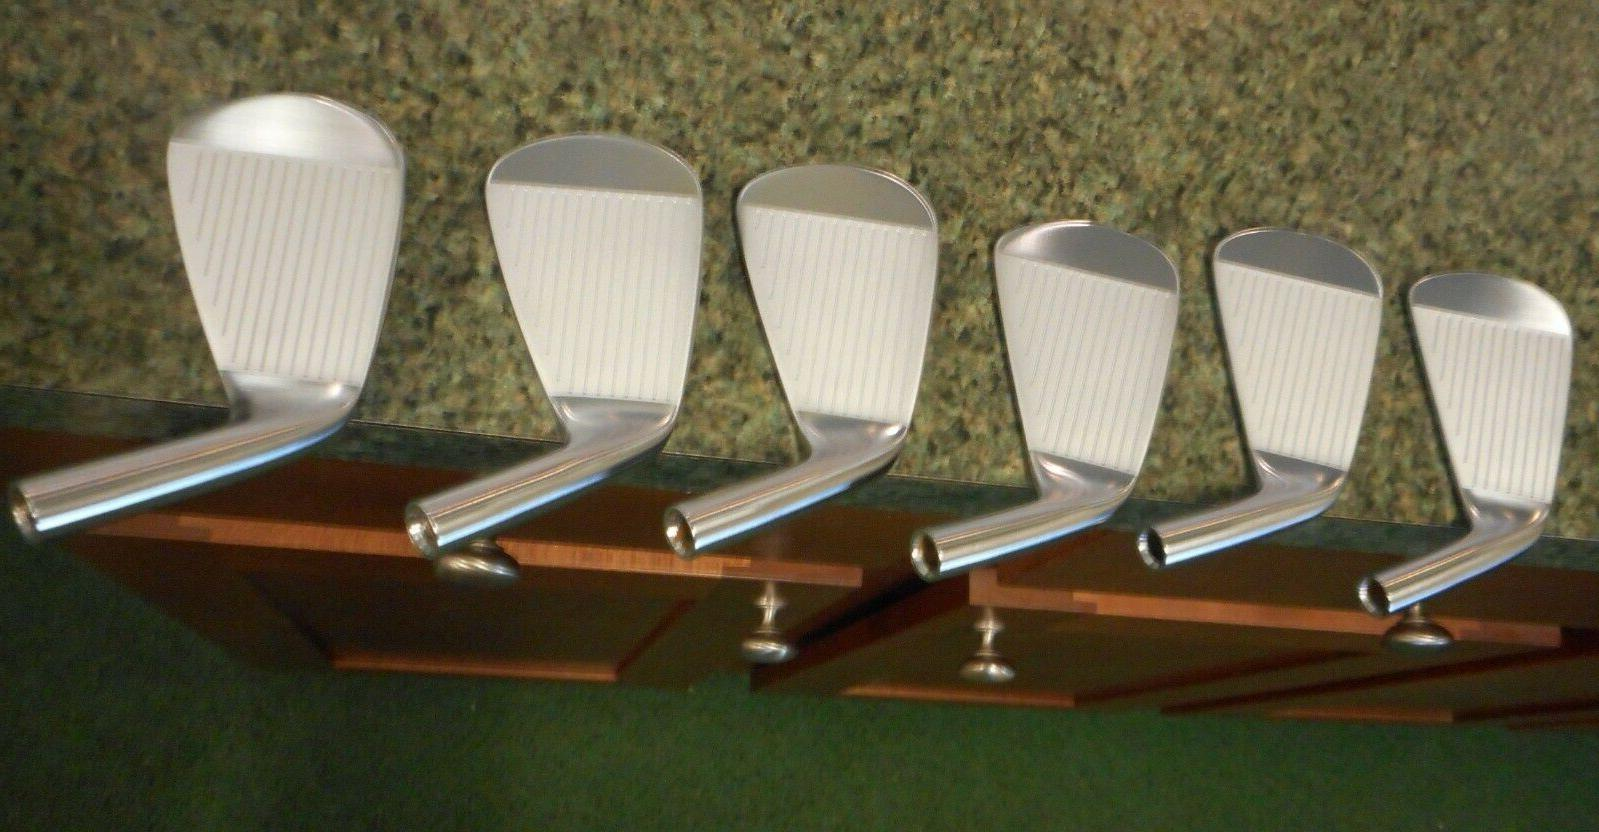 1 CB-57 3, 5, 7, 8, PW Wedge Only or